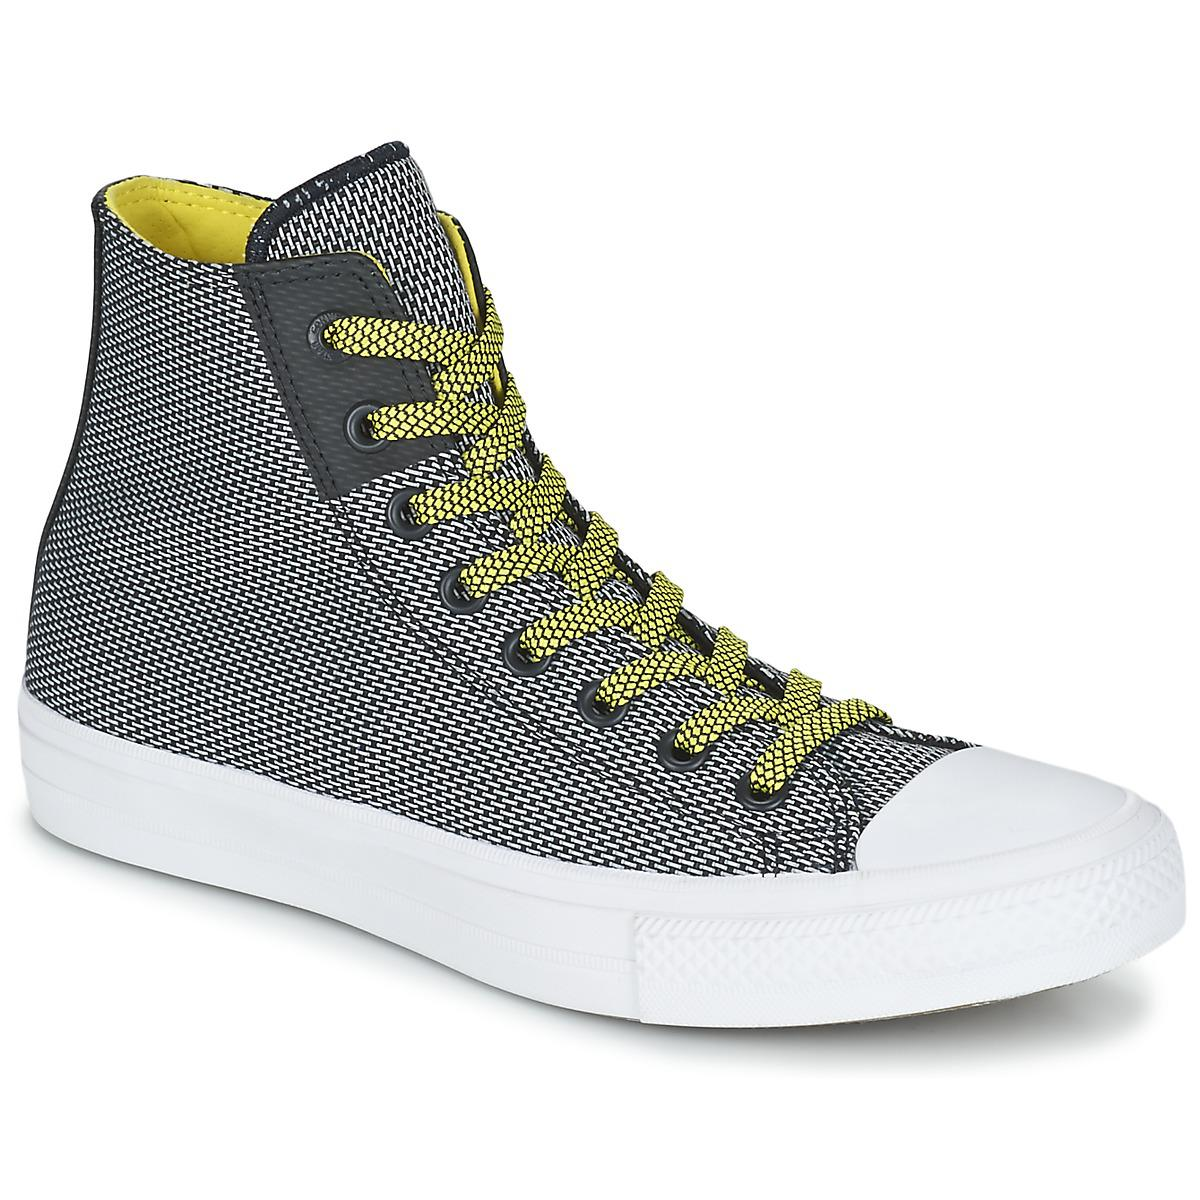 073f8afe092 Converse Chuck Taylor All Star Ii Basketweave Fuse Hi Men s Shoes ...